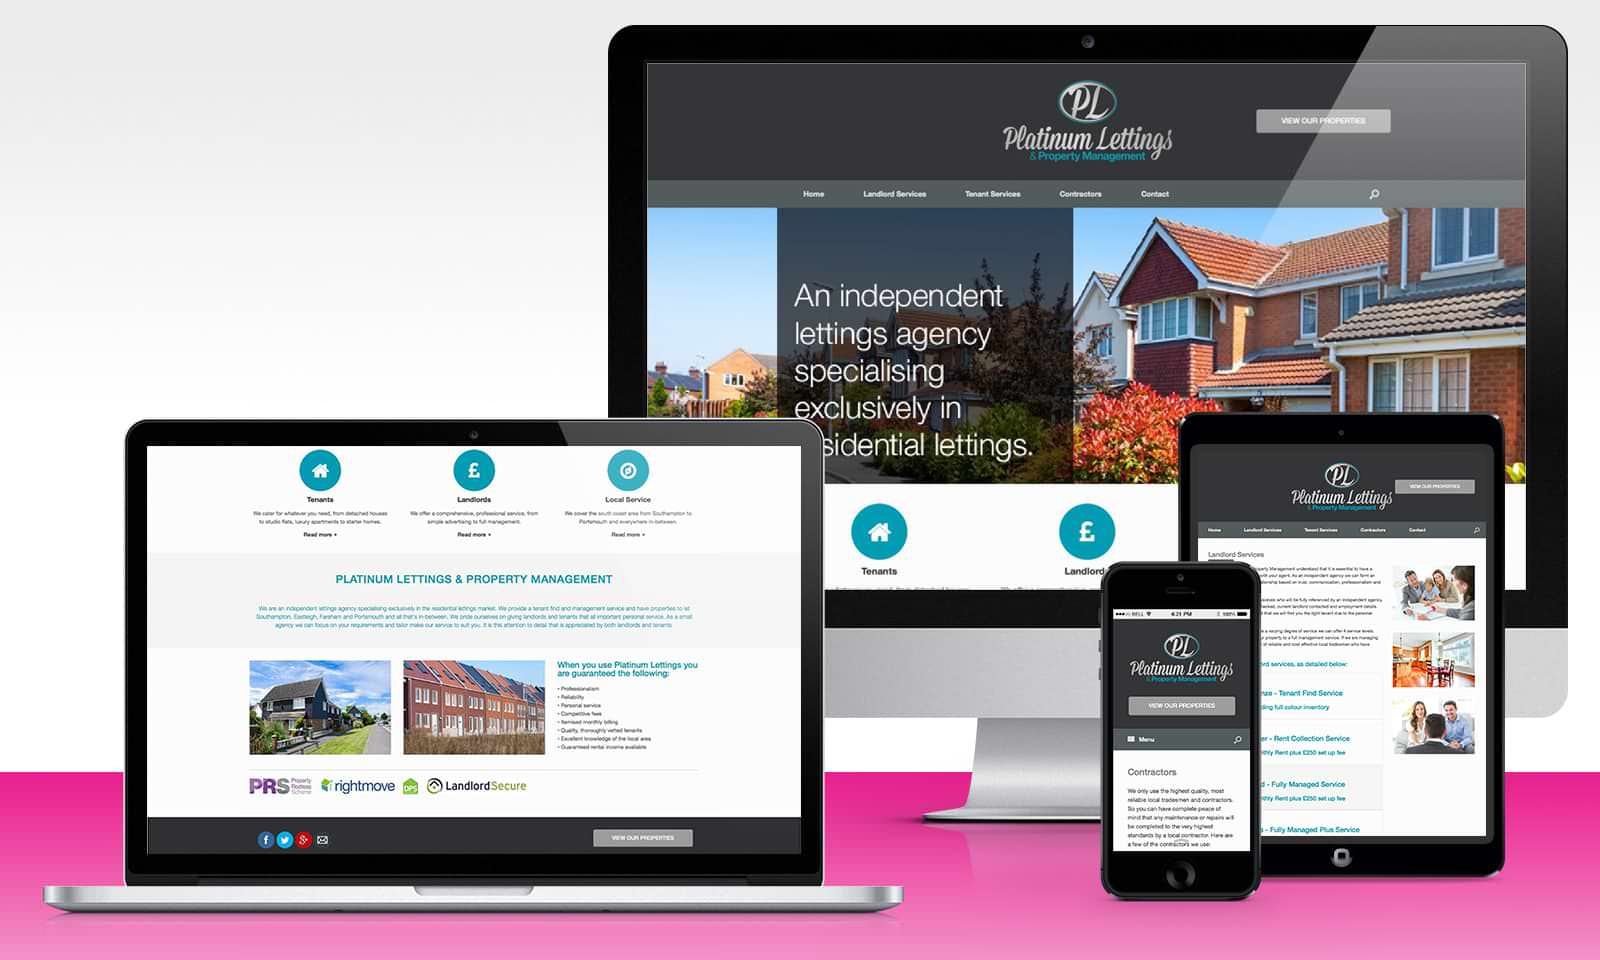 Web platinumlettings